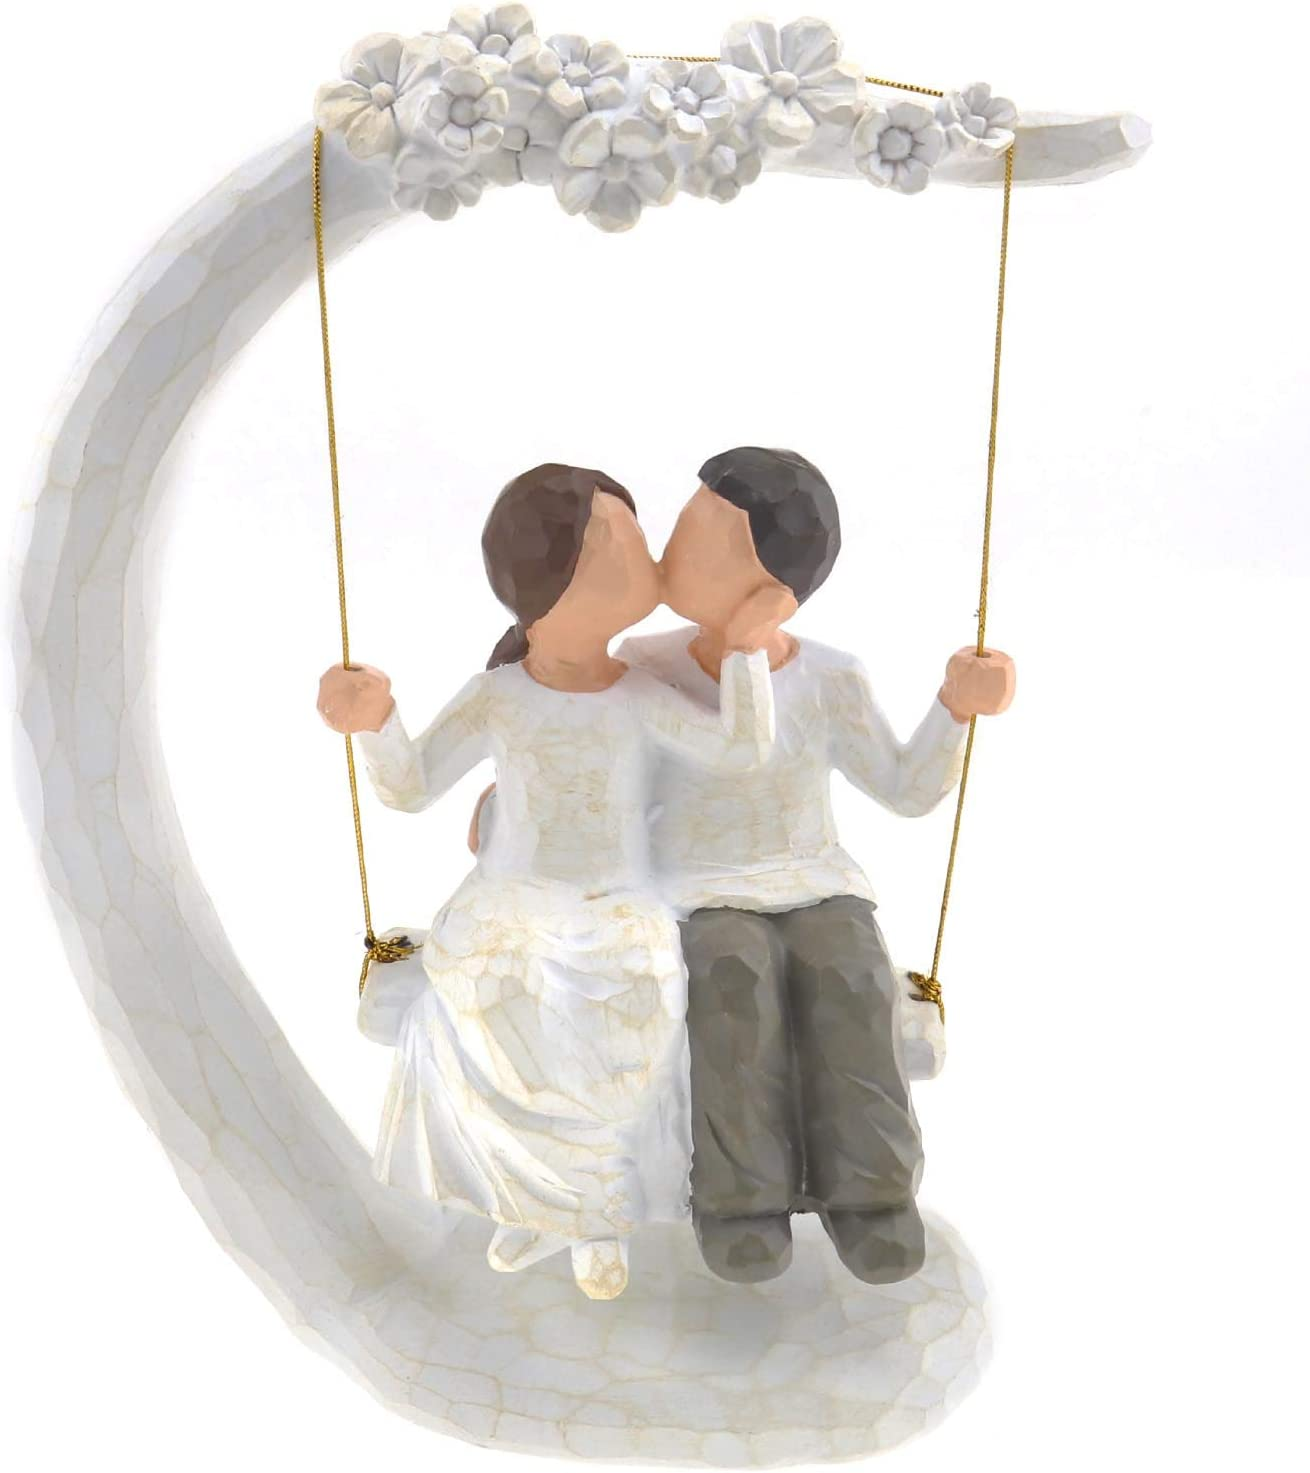 Micro Traders Couple Figure, Couple Anniversary Figurine Wedding Sculpture Love Kissing Swing Statue Wife Husband Gift Home Decoration for Valentines Day Birthday